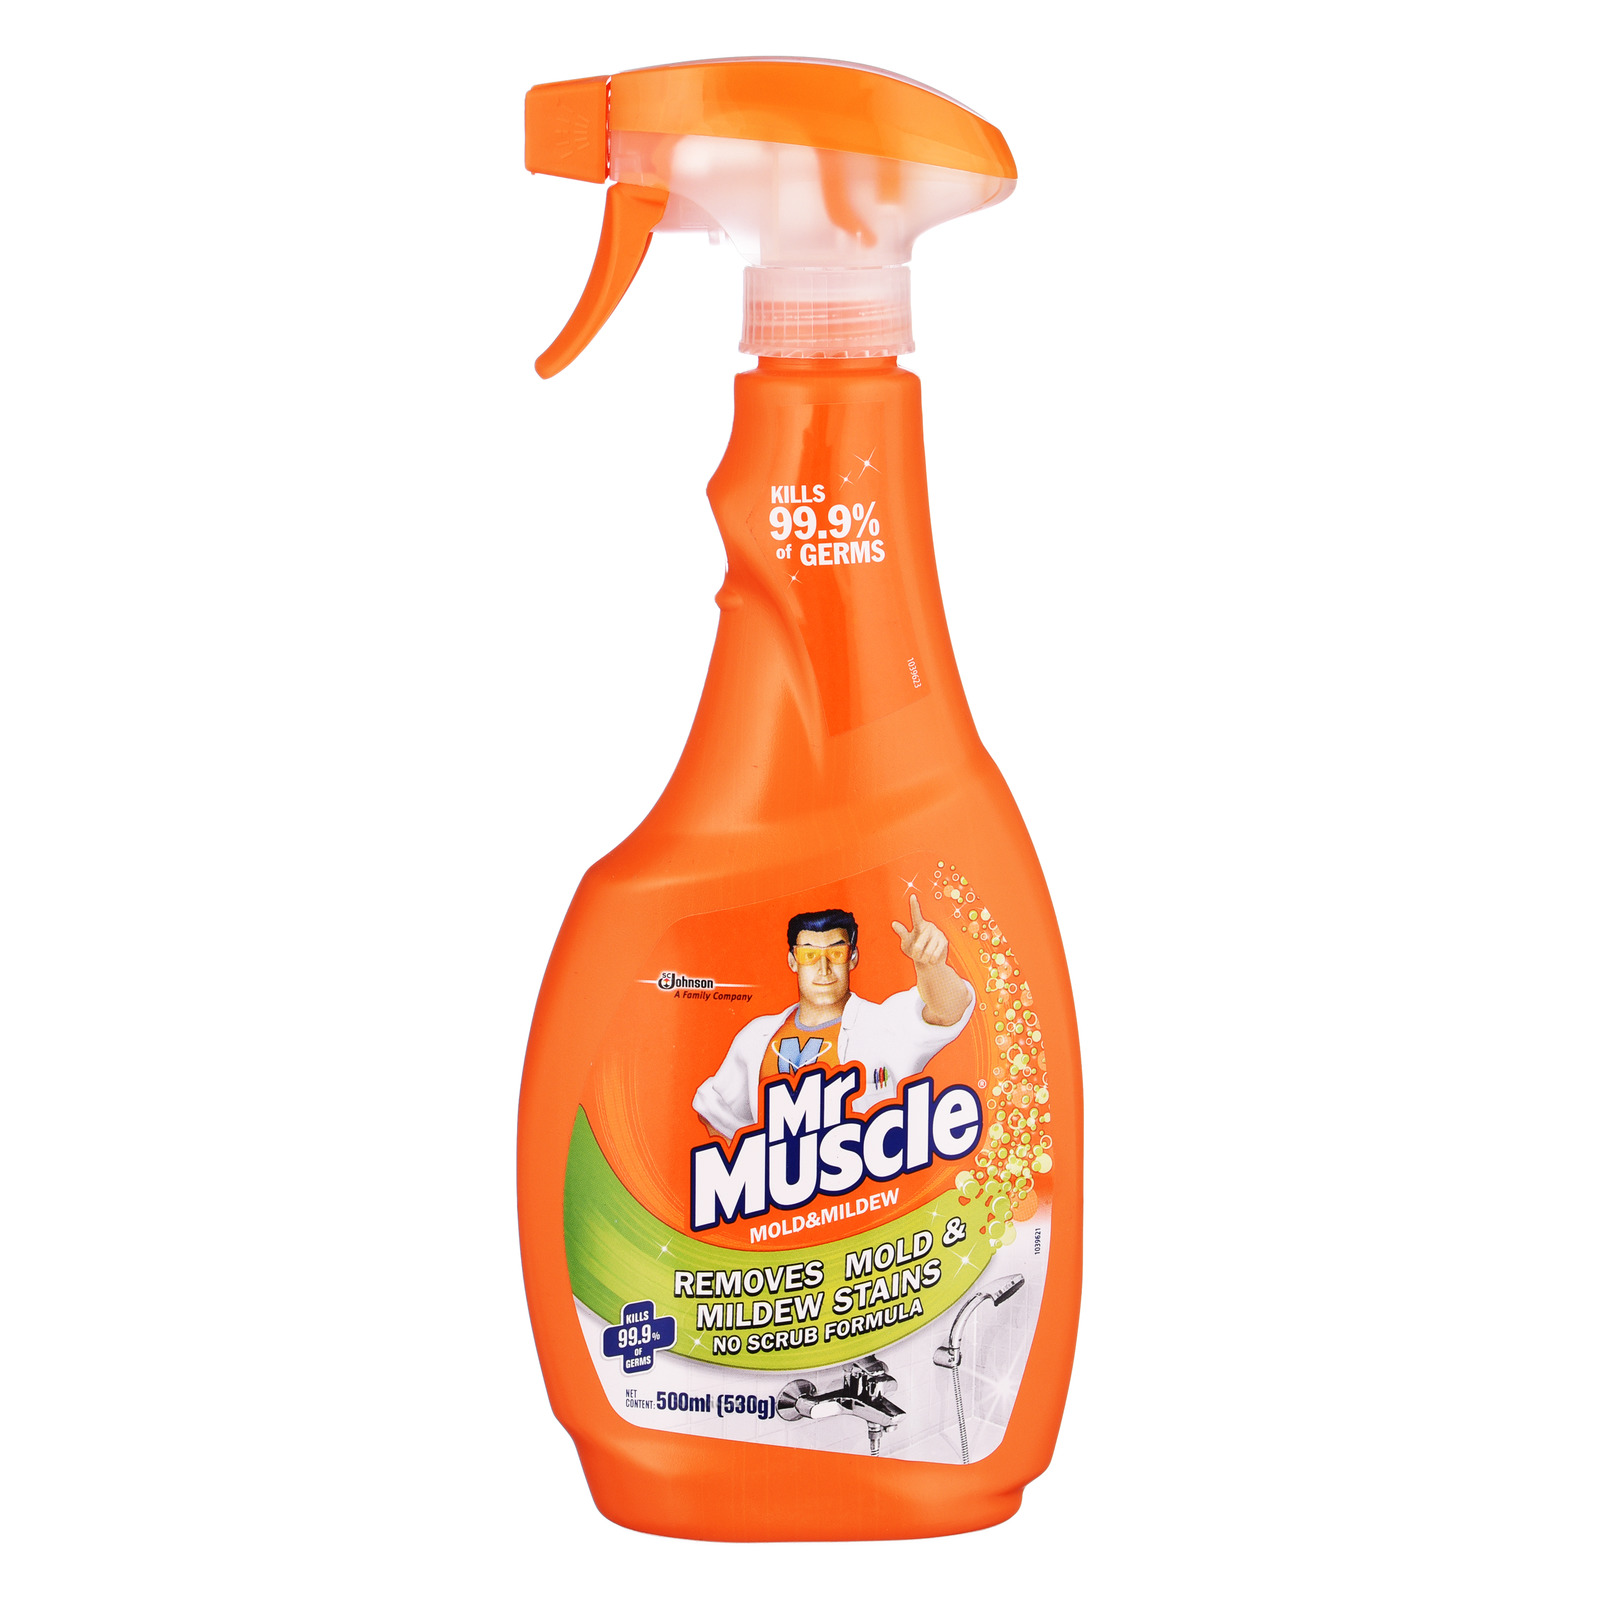 Mr Muscle Mold & Mildew Foaming Bleach